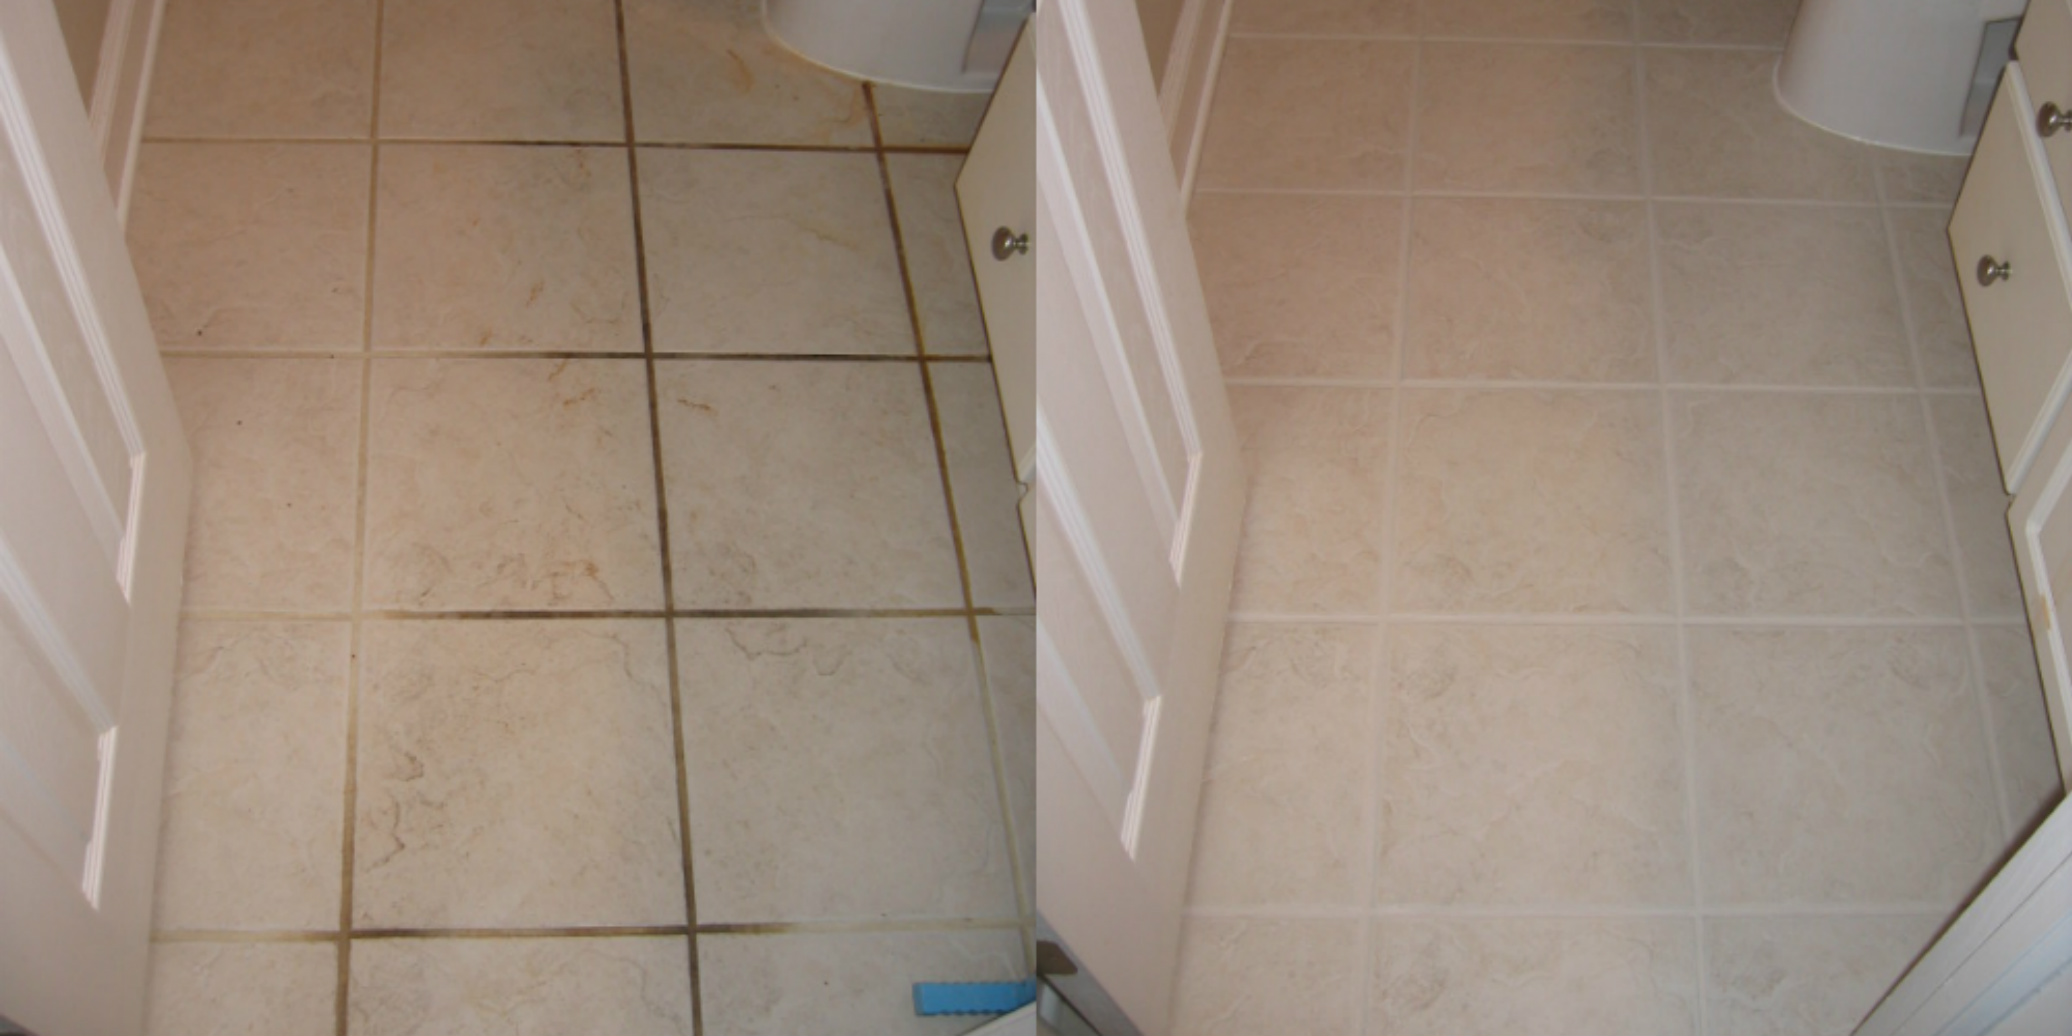 Tile and grout cleaning brisbane best tile cleaners brisbane tile and grout cleaning dailygadgetfo Choice Image